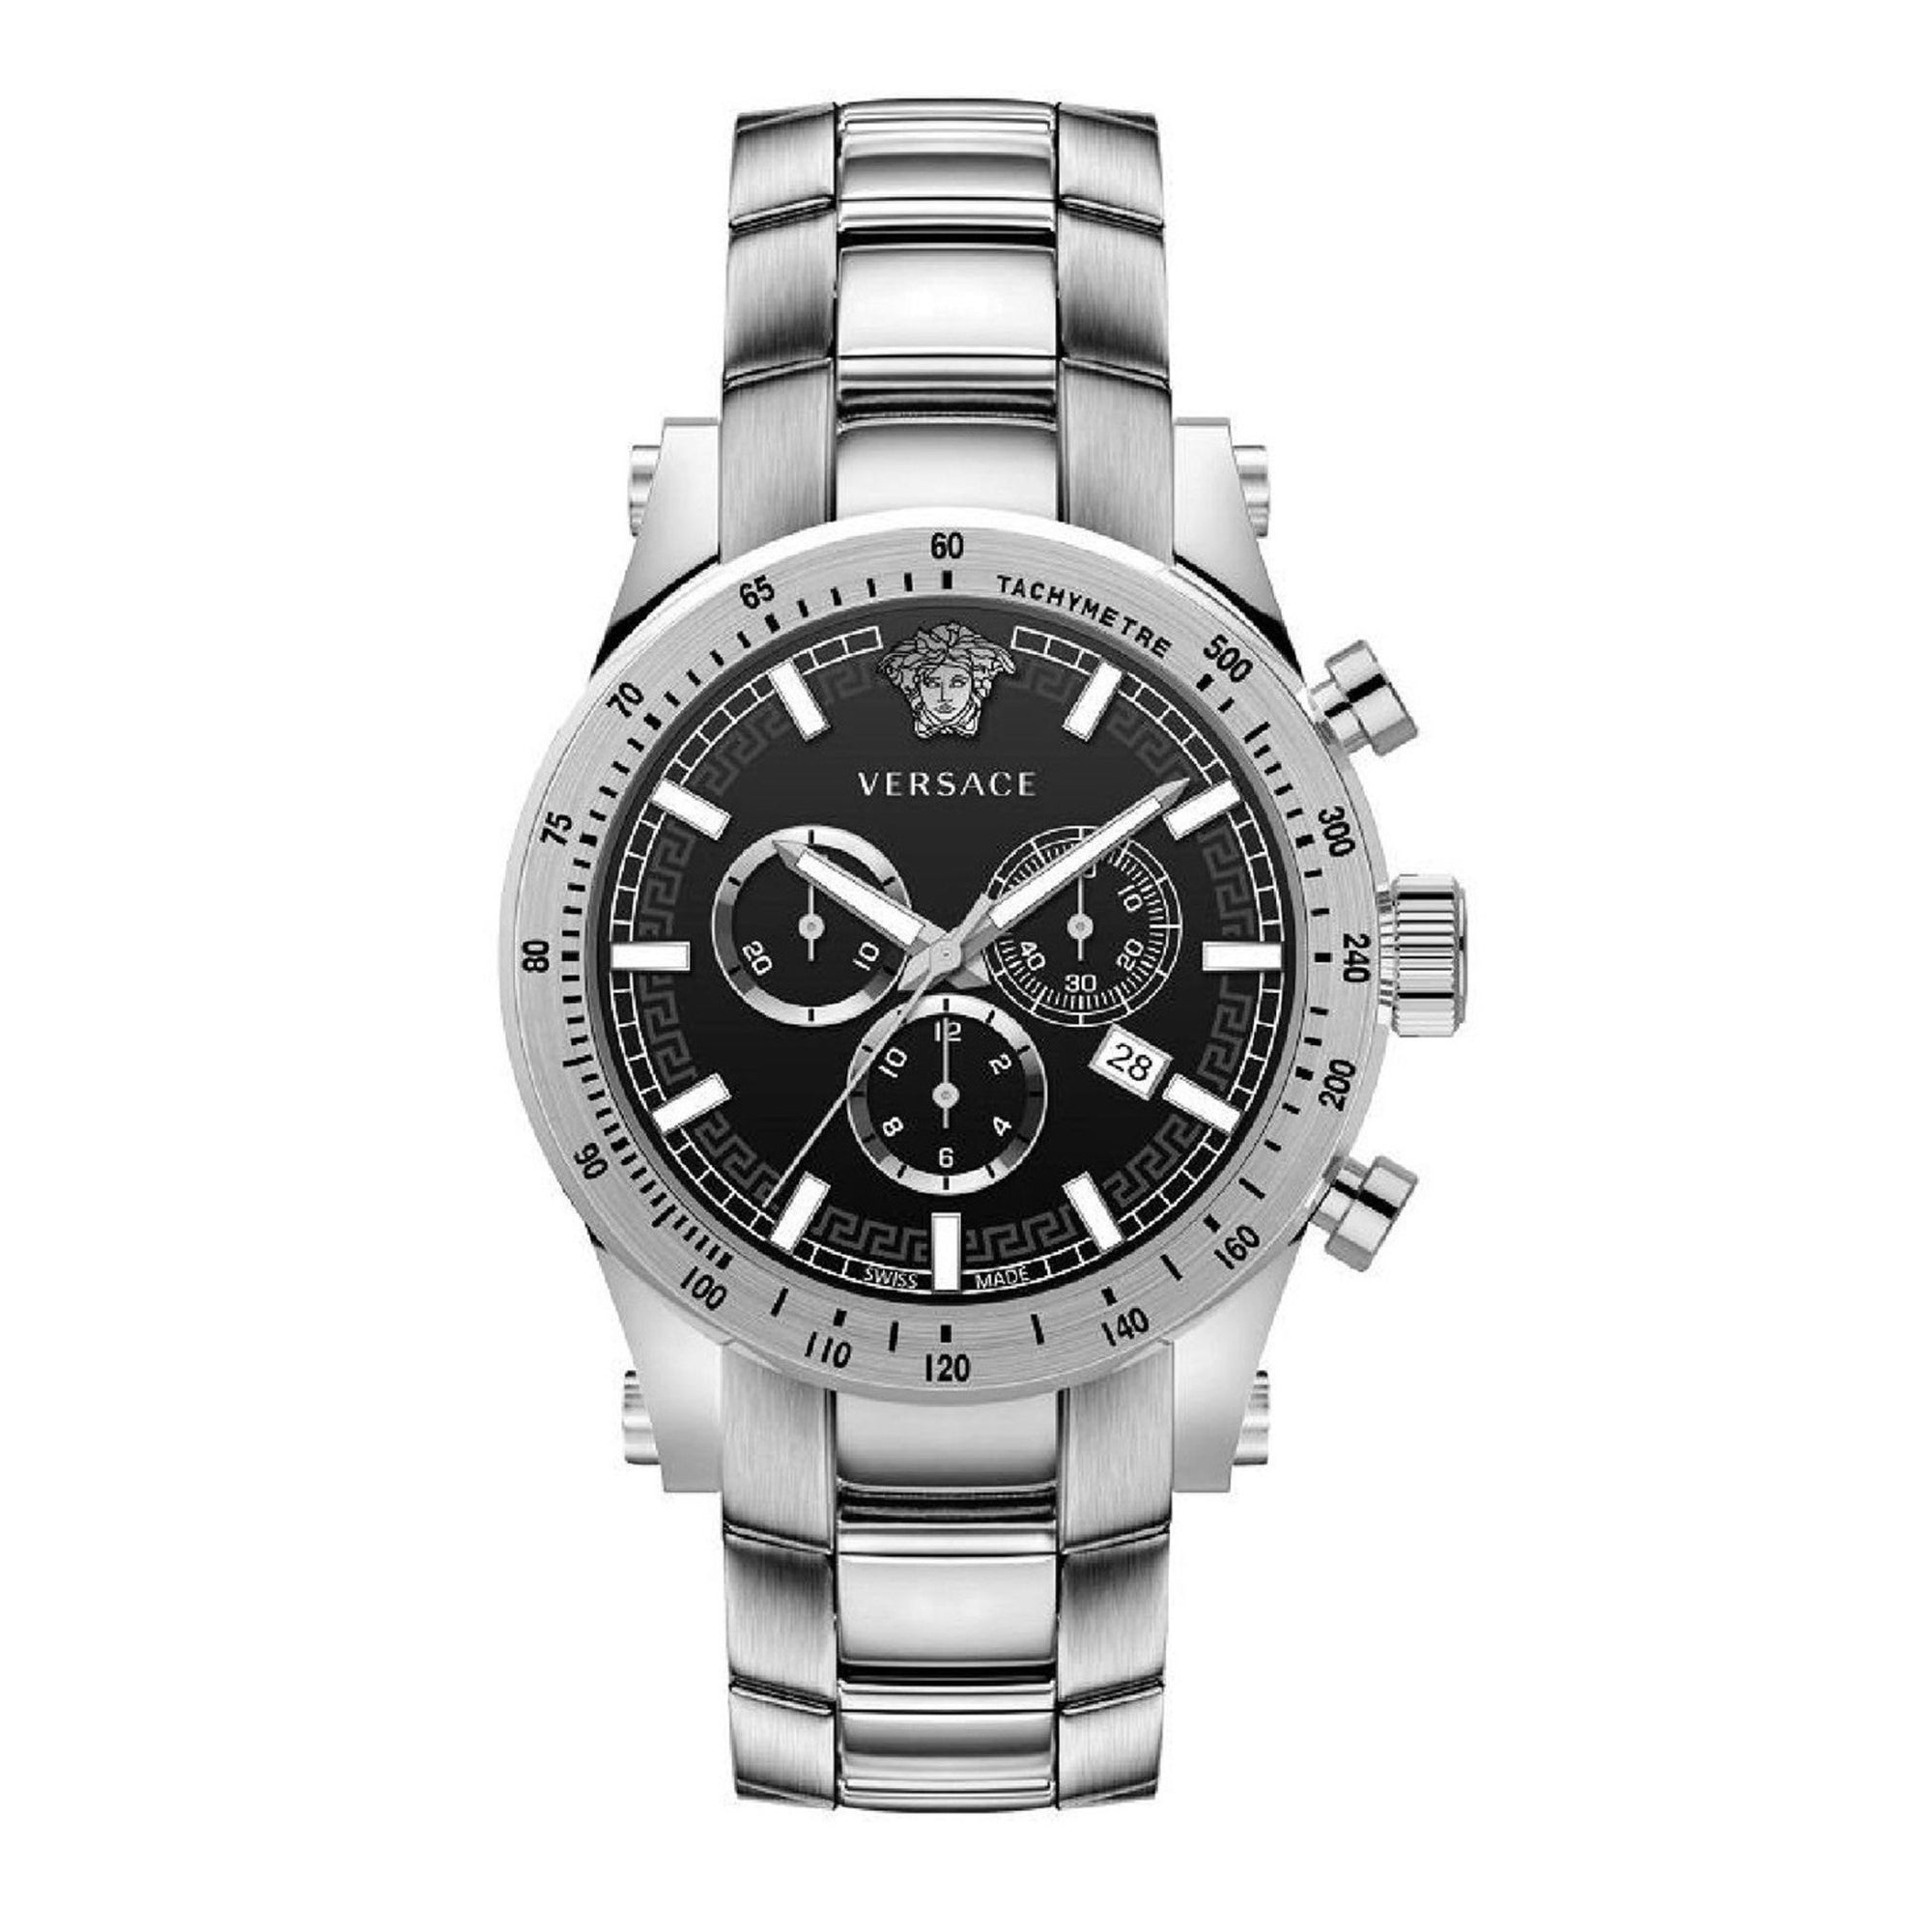 Versace Sporty Chronograph Steel - Watches & Crystals